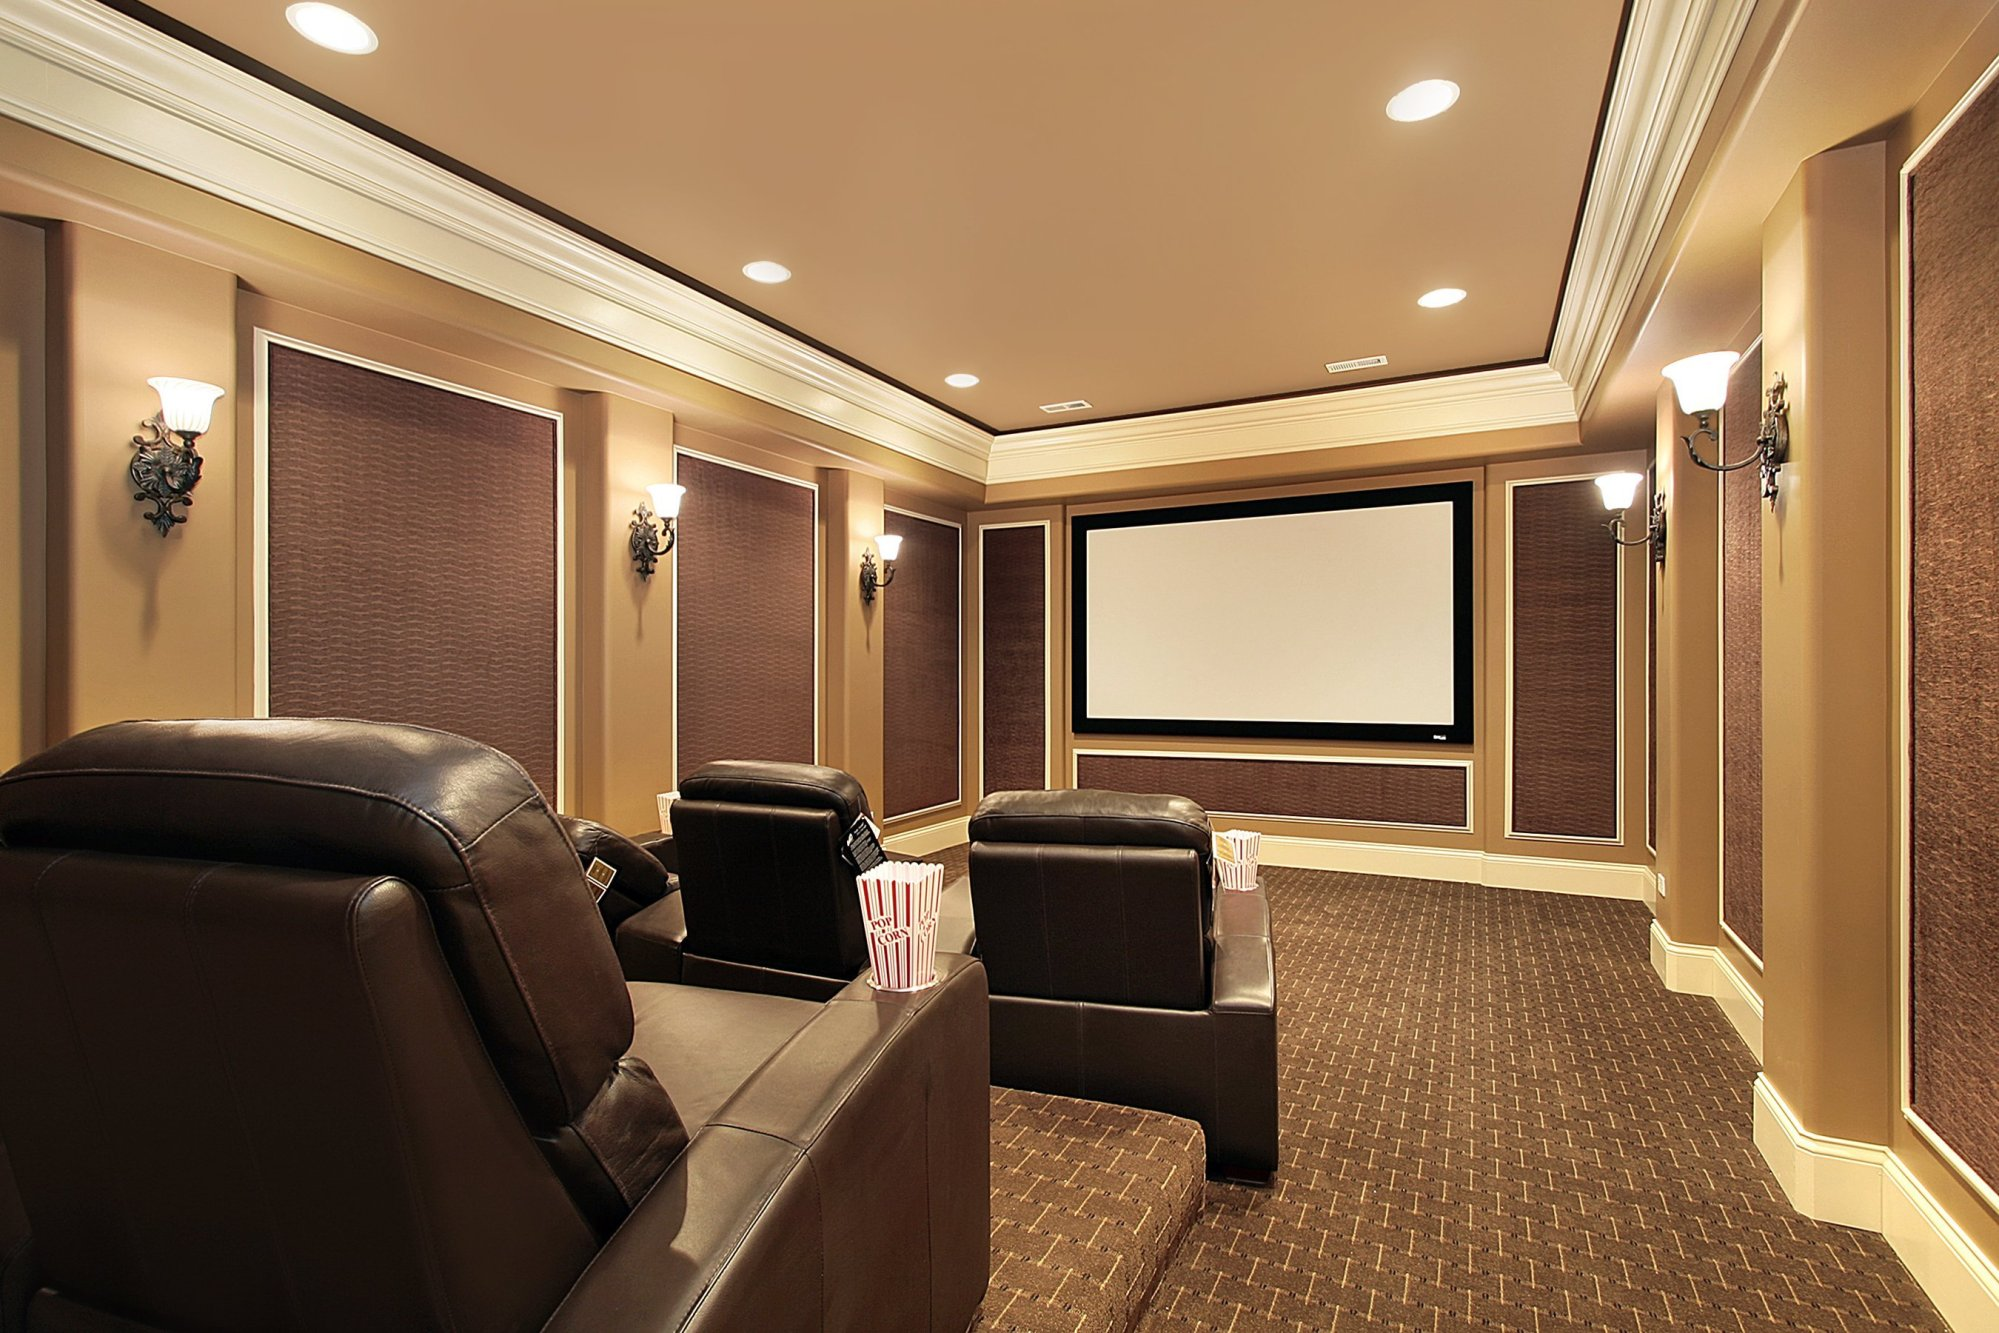 hight resolution of they can be fine tuned for the perfect level of light during before or after movies or in any situation your home theater room